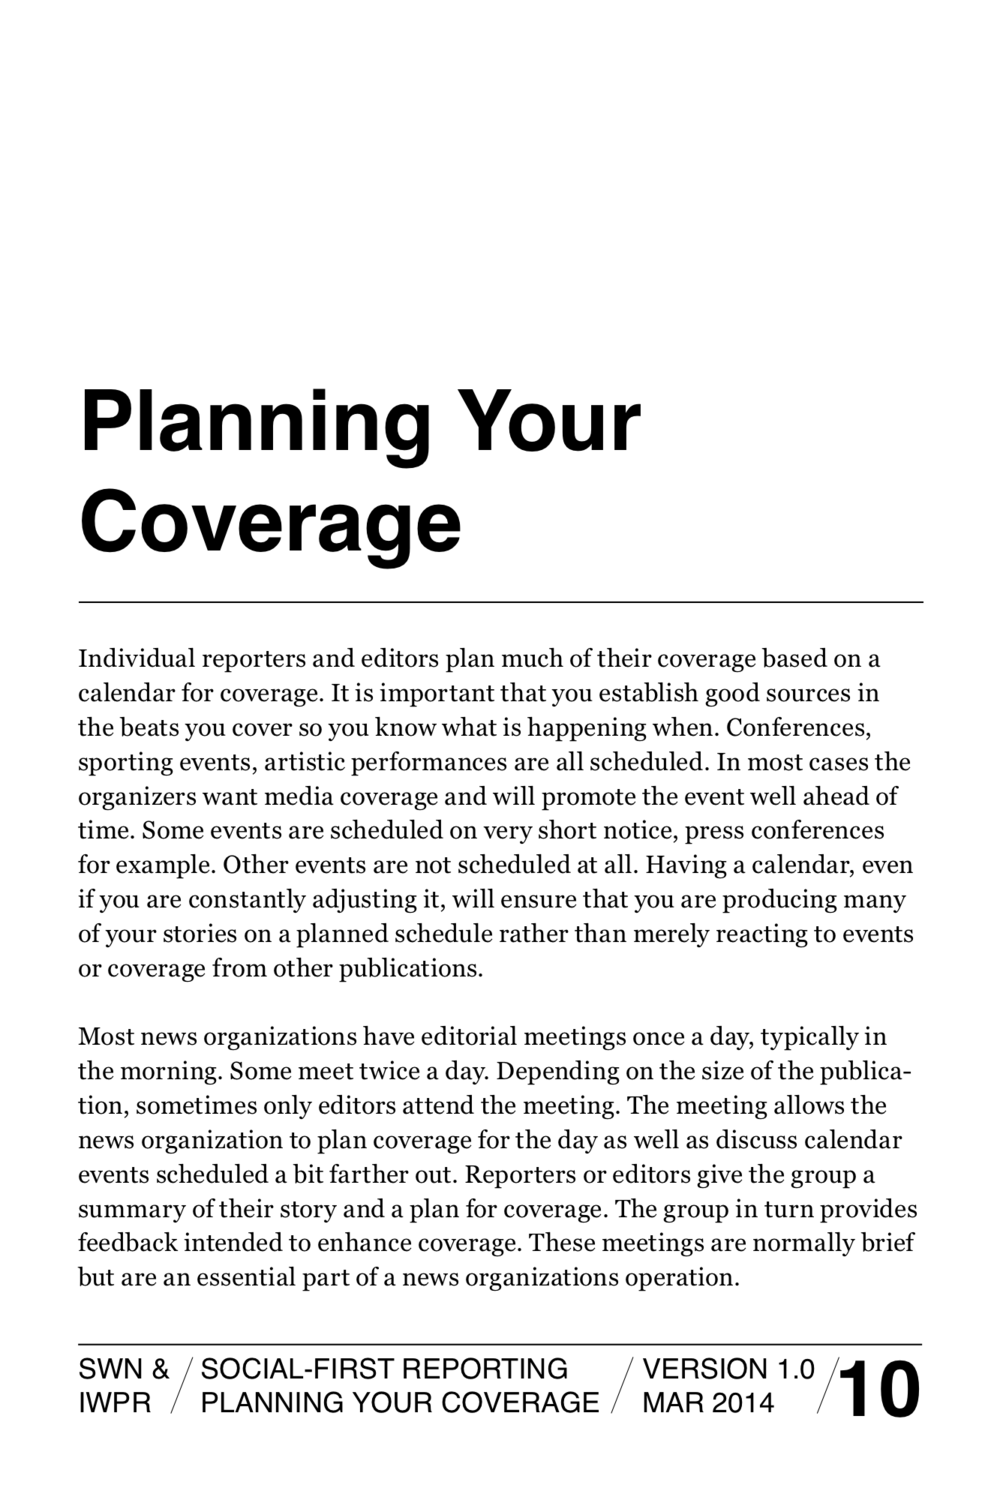 planningcoverage 10.png